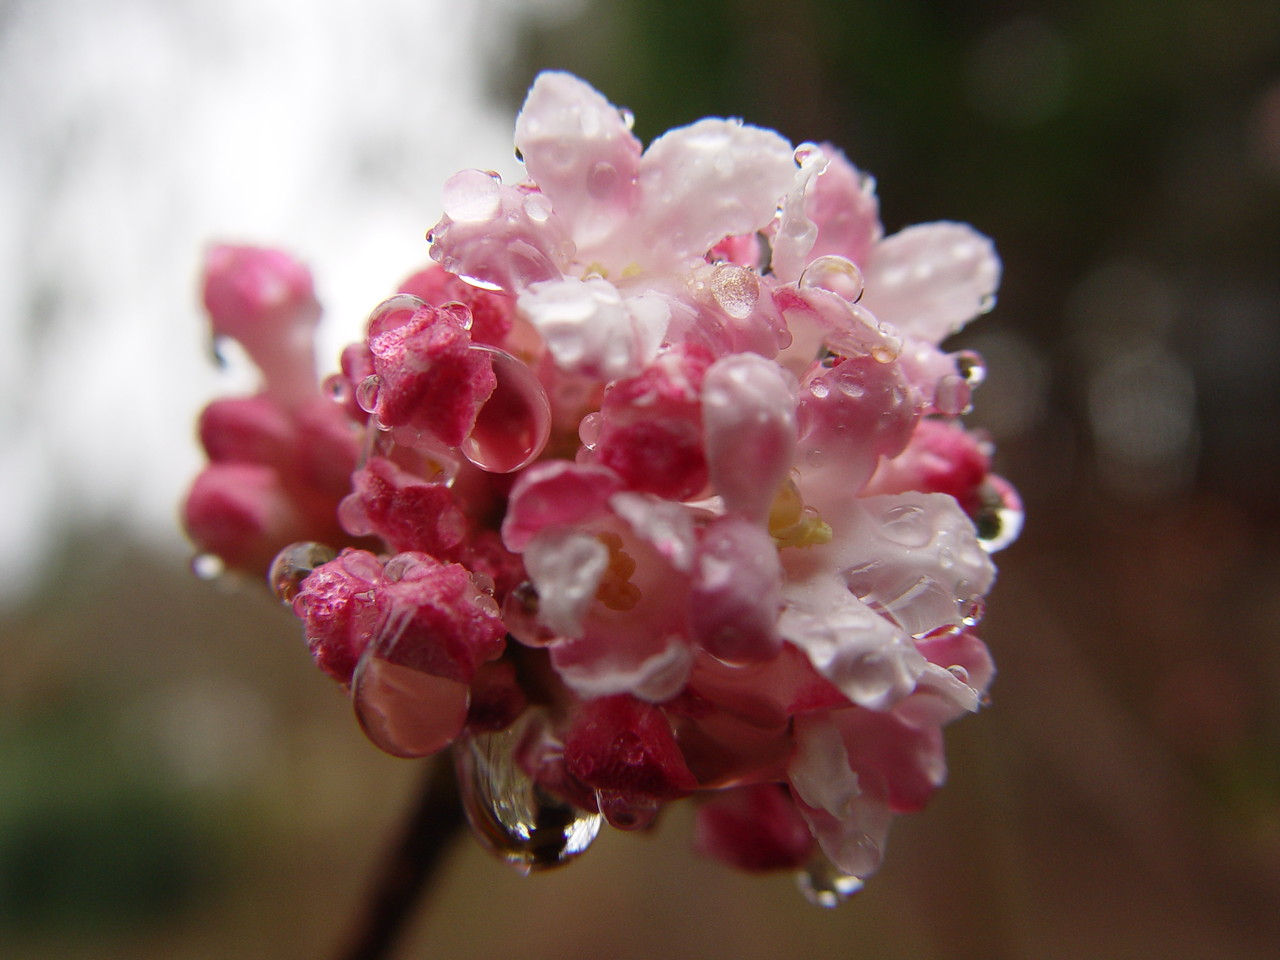 One of the first signs of Spring in our garden. The cultivars of Viburnum x bodnantense are now beginning to flower.